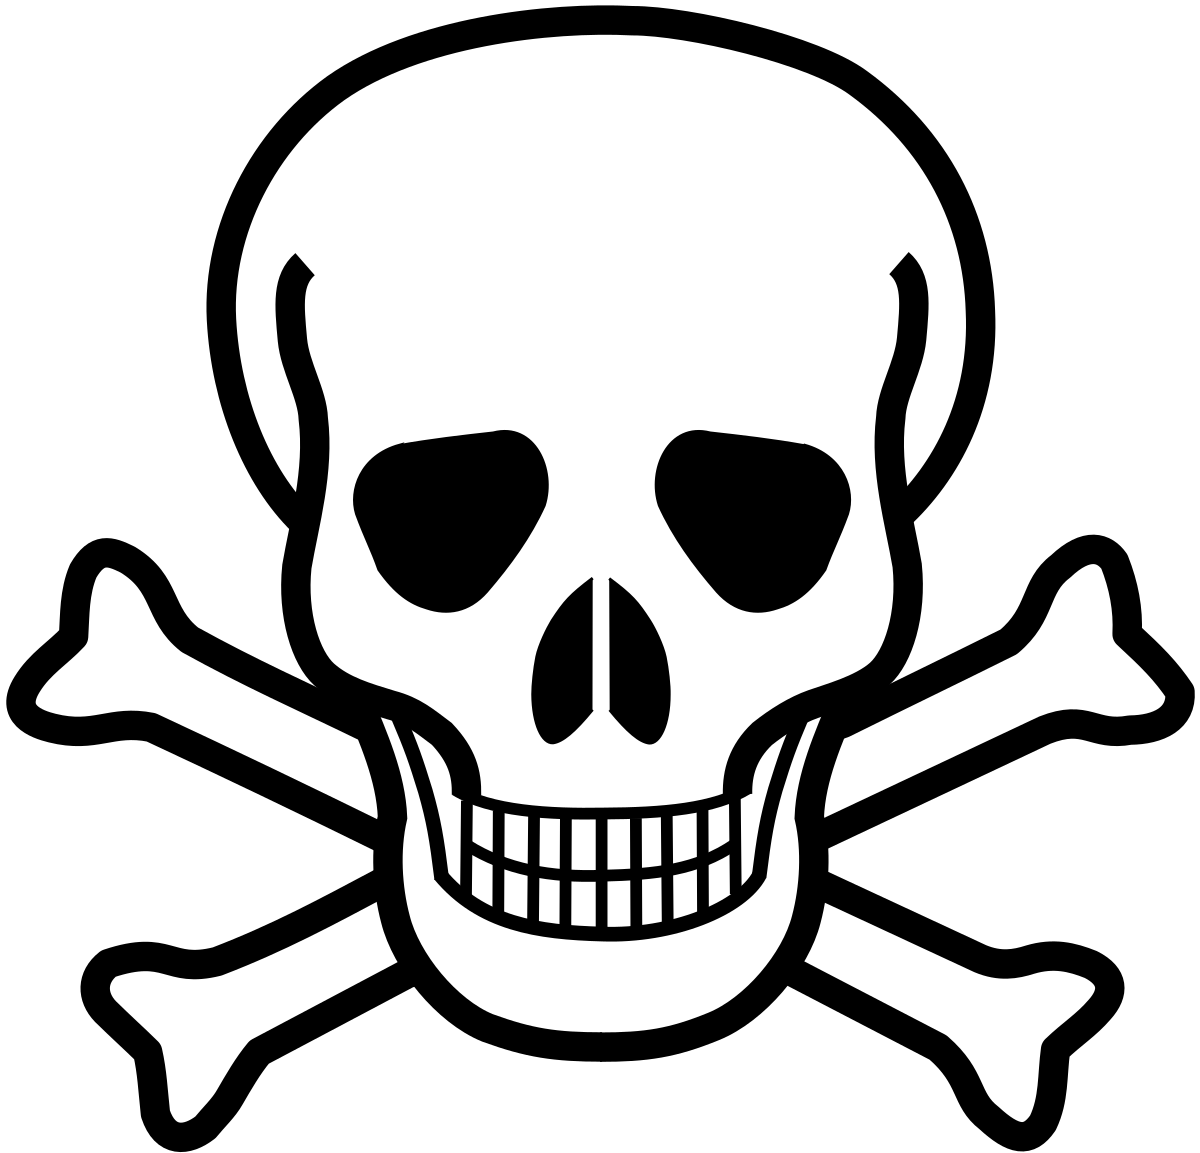 1200px-Skull_and_Crossbones.png